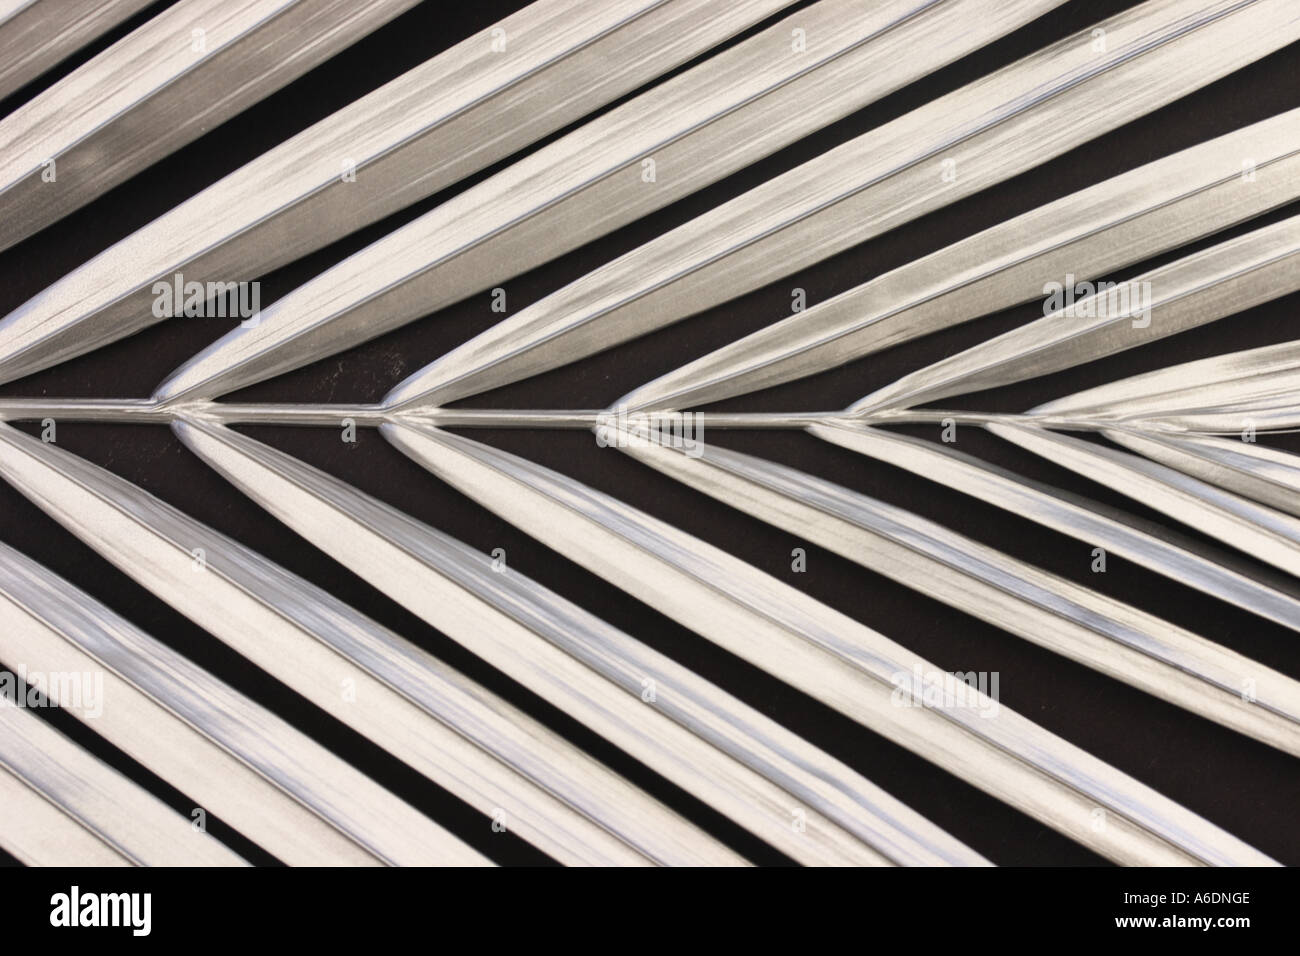 SILVER PALM FROND   BLACK BACKGROUND HORIZONTAL BAPDB5988 - Stock Image